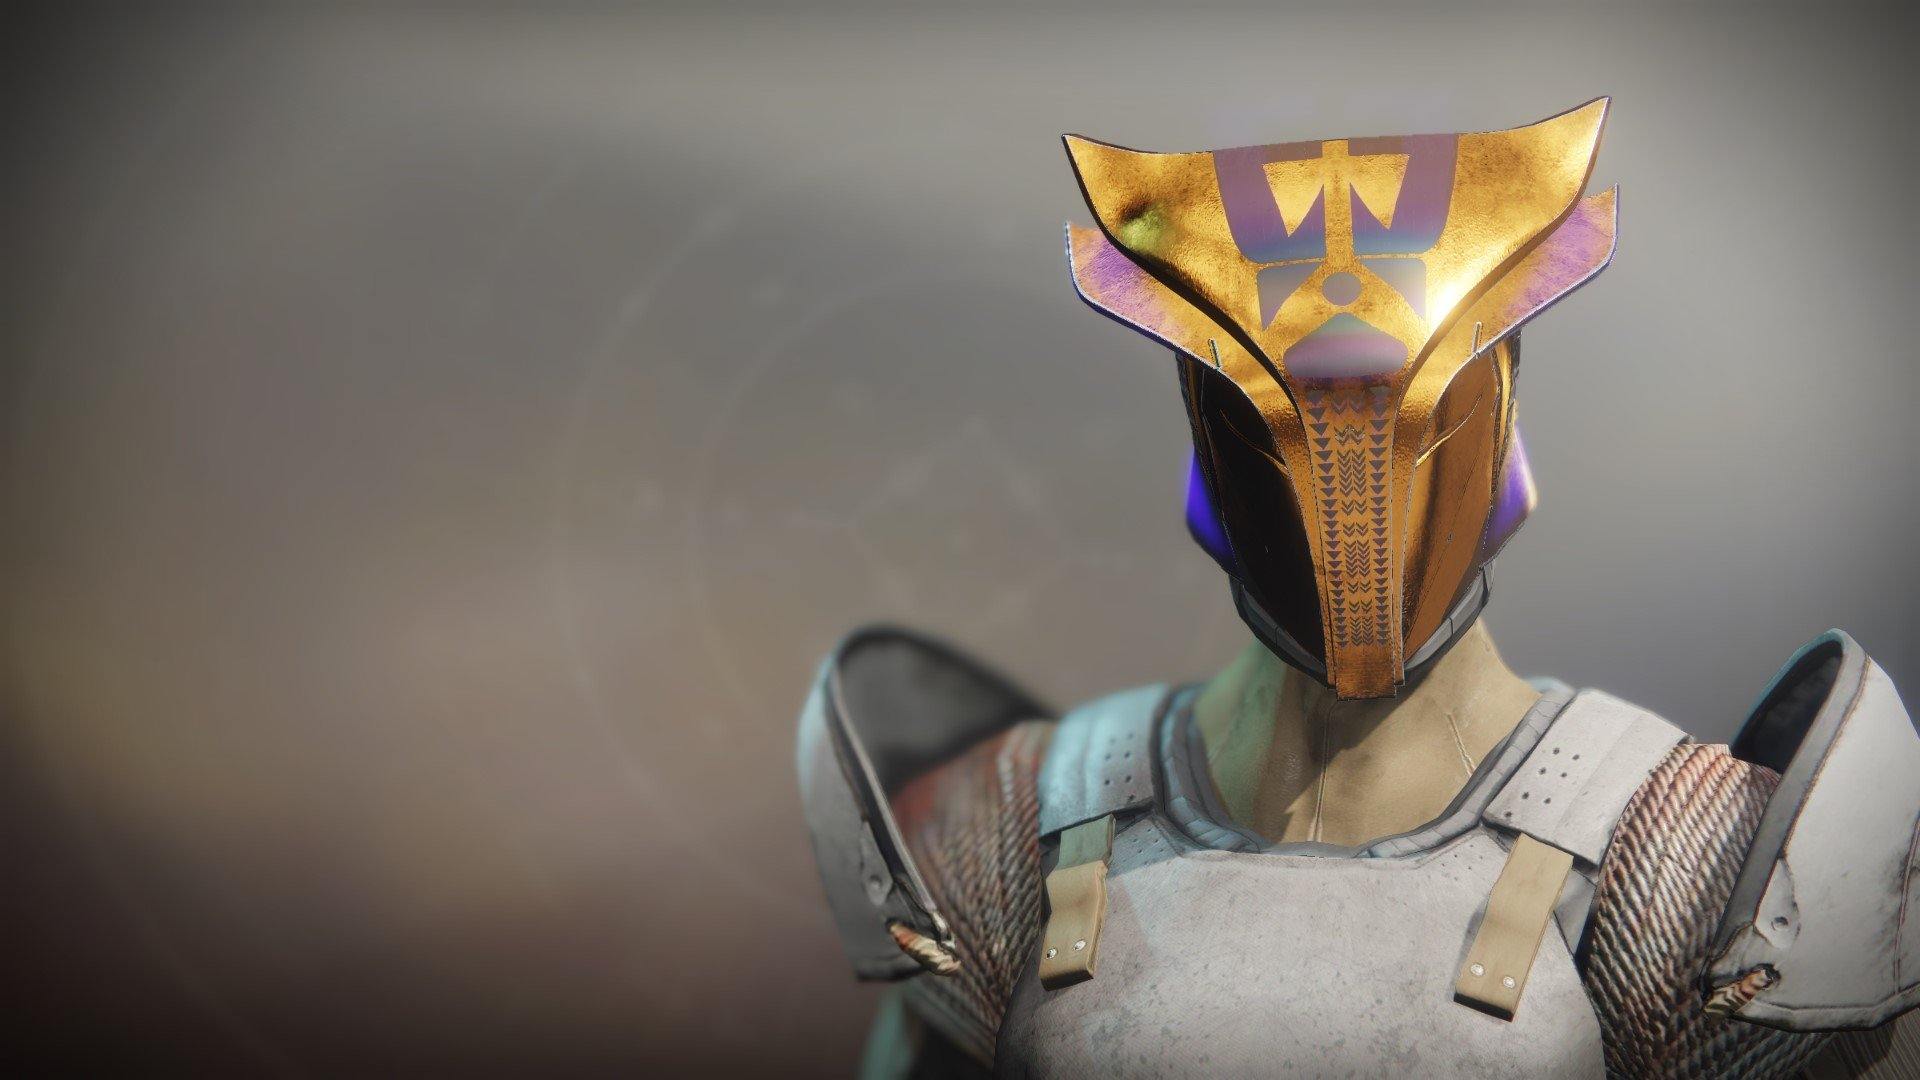 An in-game render of the Helm of the Emperor's Champion.